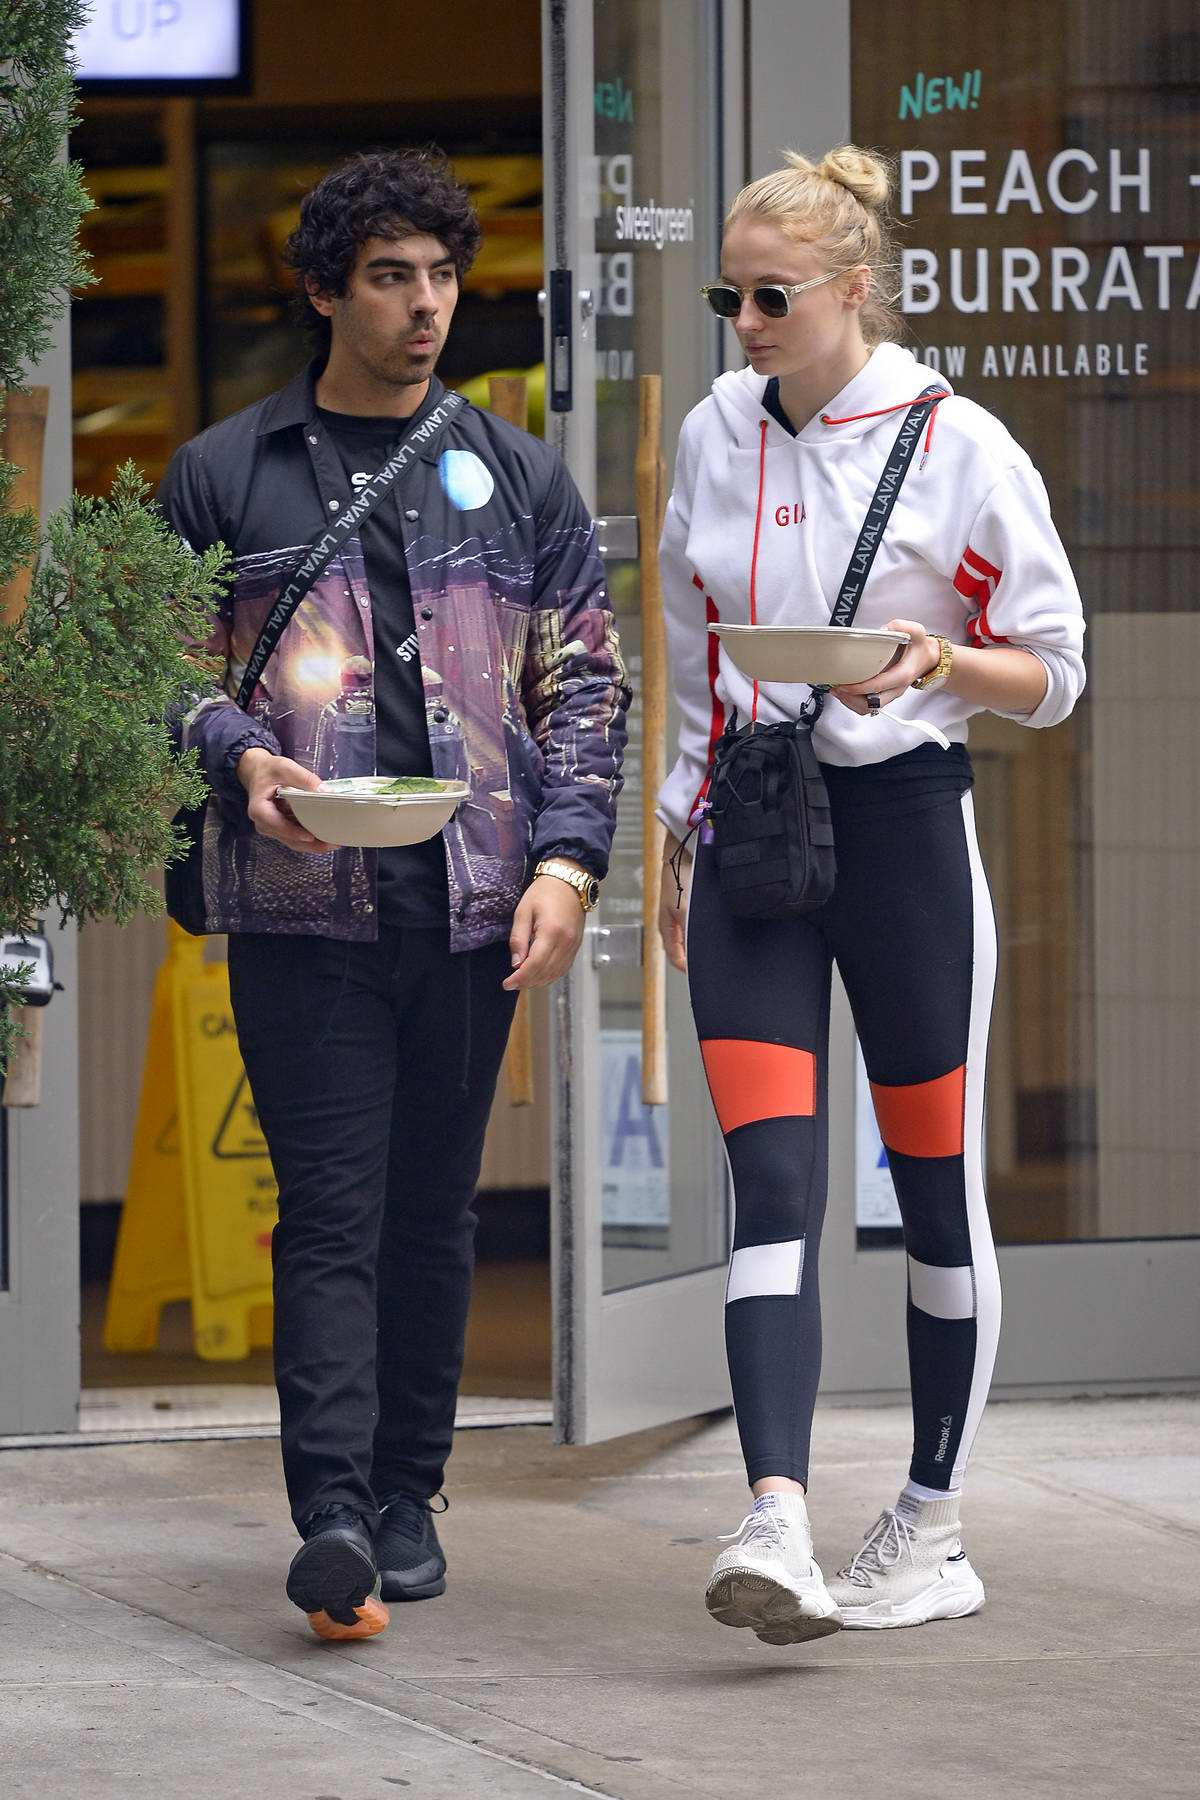 Sophie Turner and Joe Jonas grabs some takeout at Sweetgreen restaurant in New York City